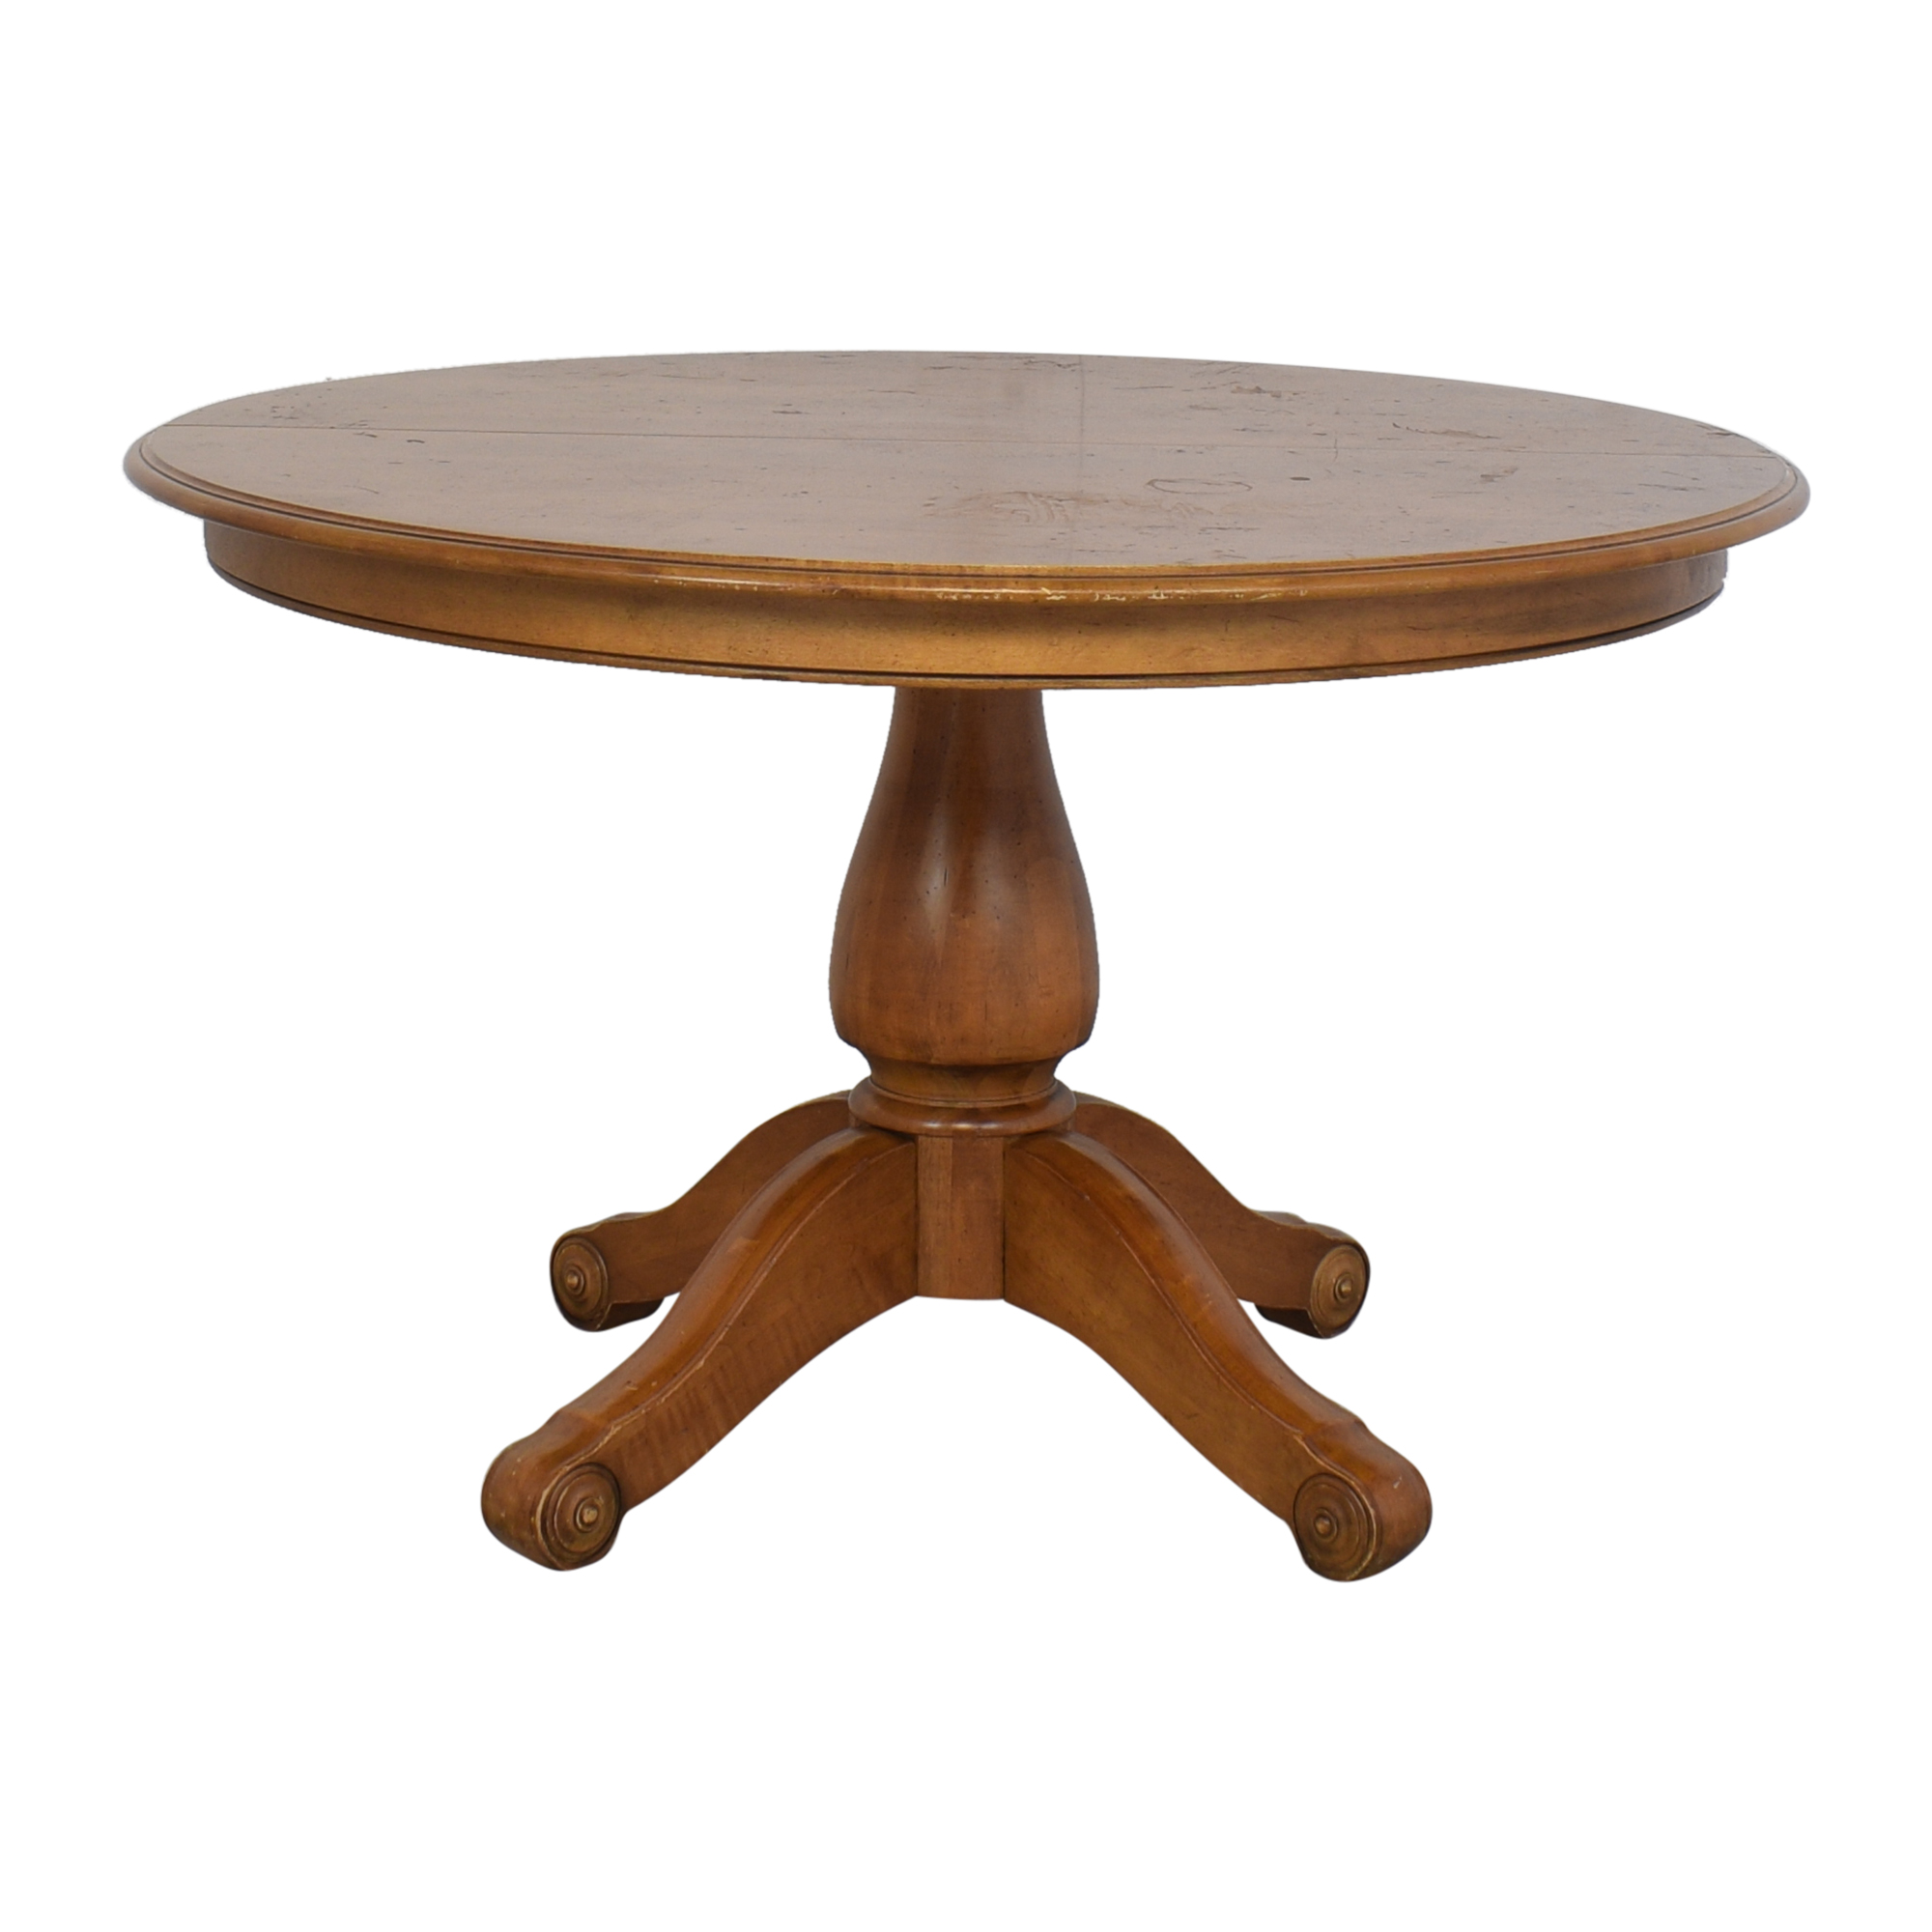 Ethan Allen Round Dining Table / Tables